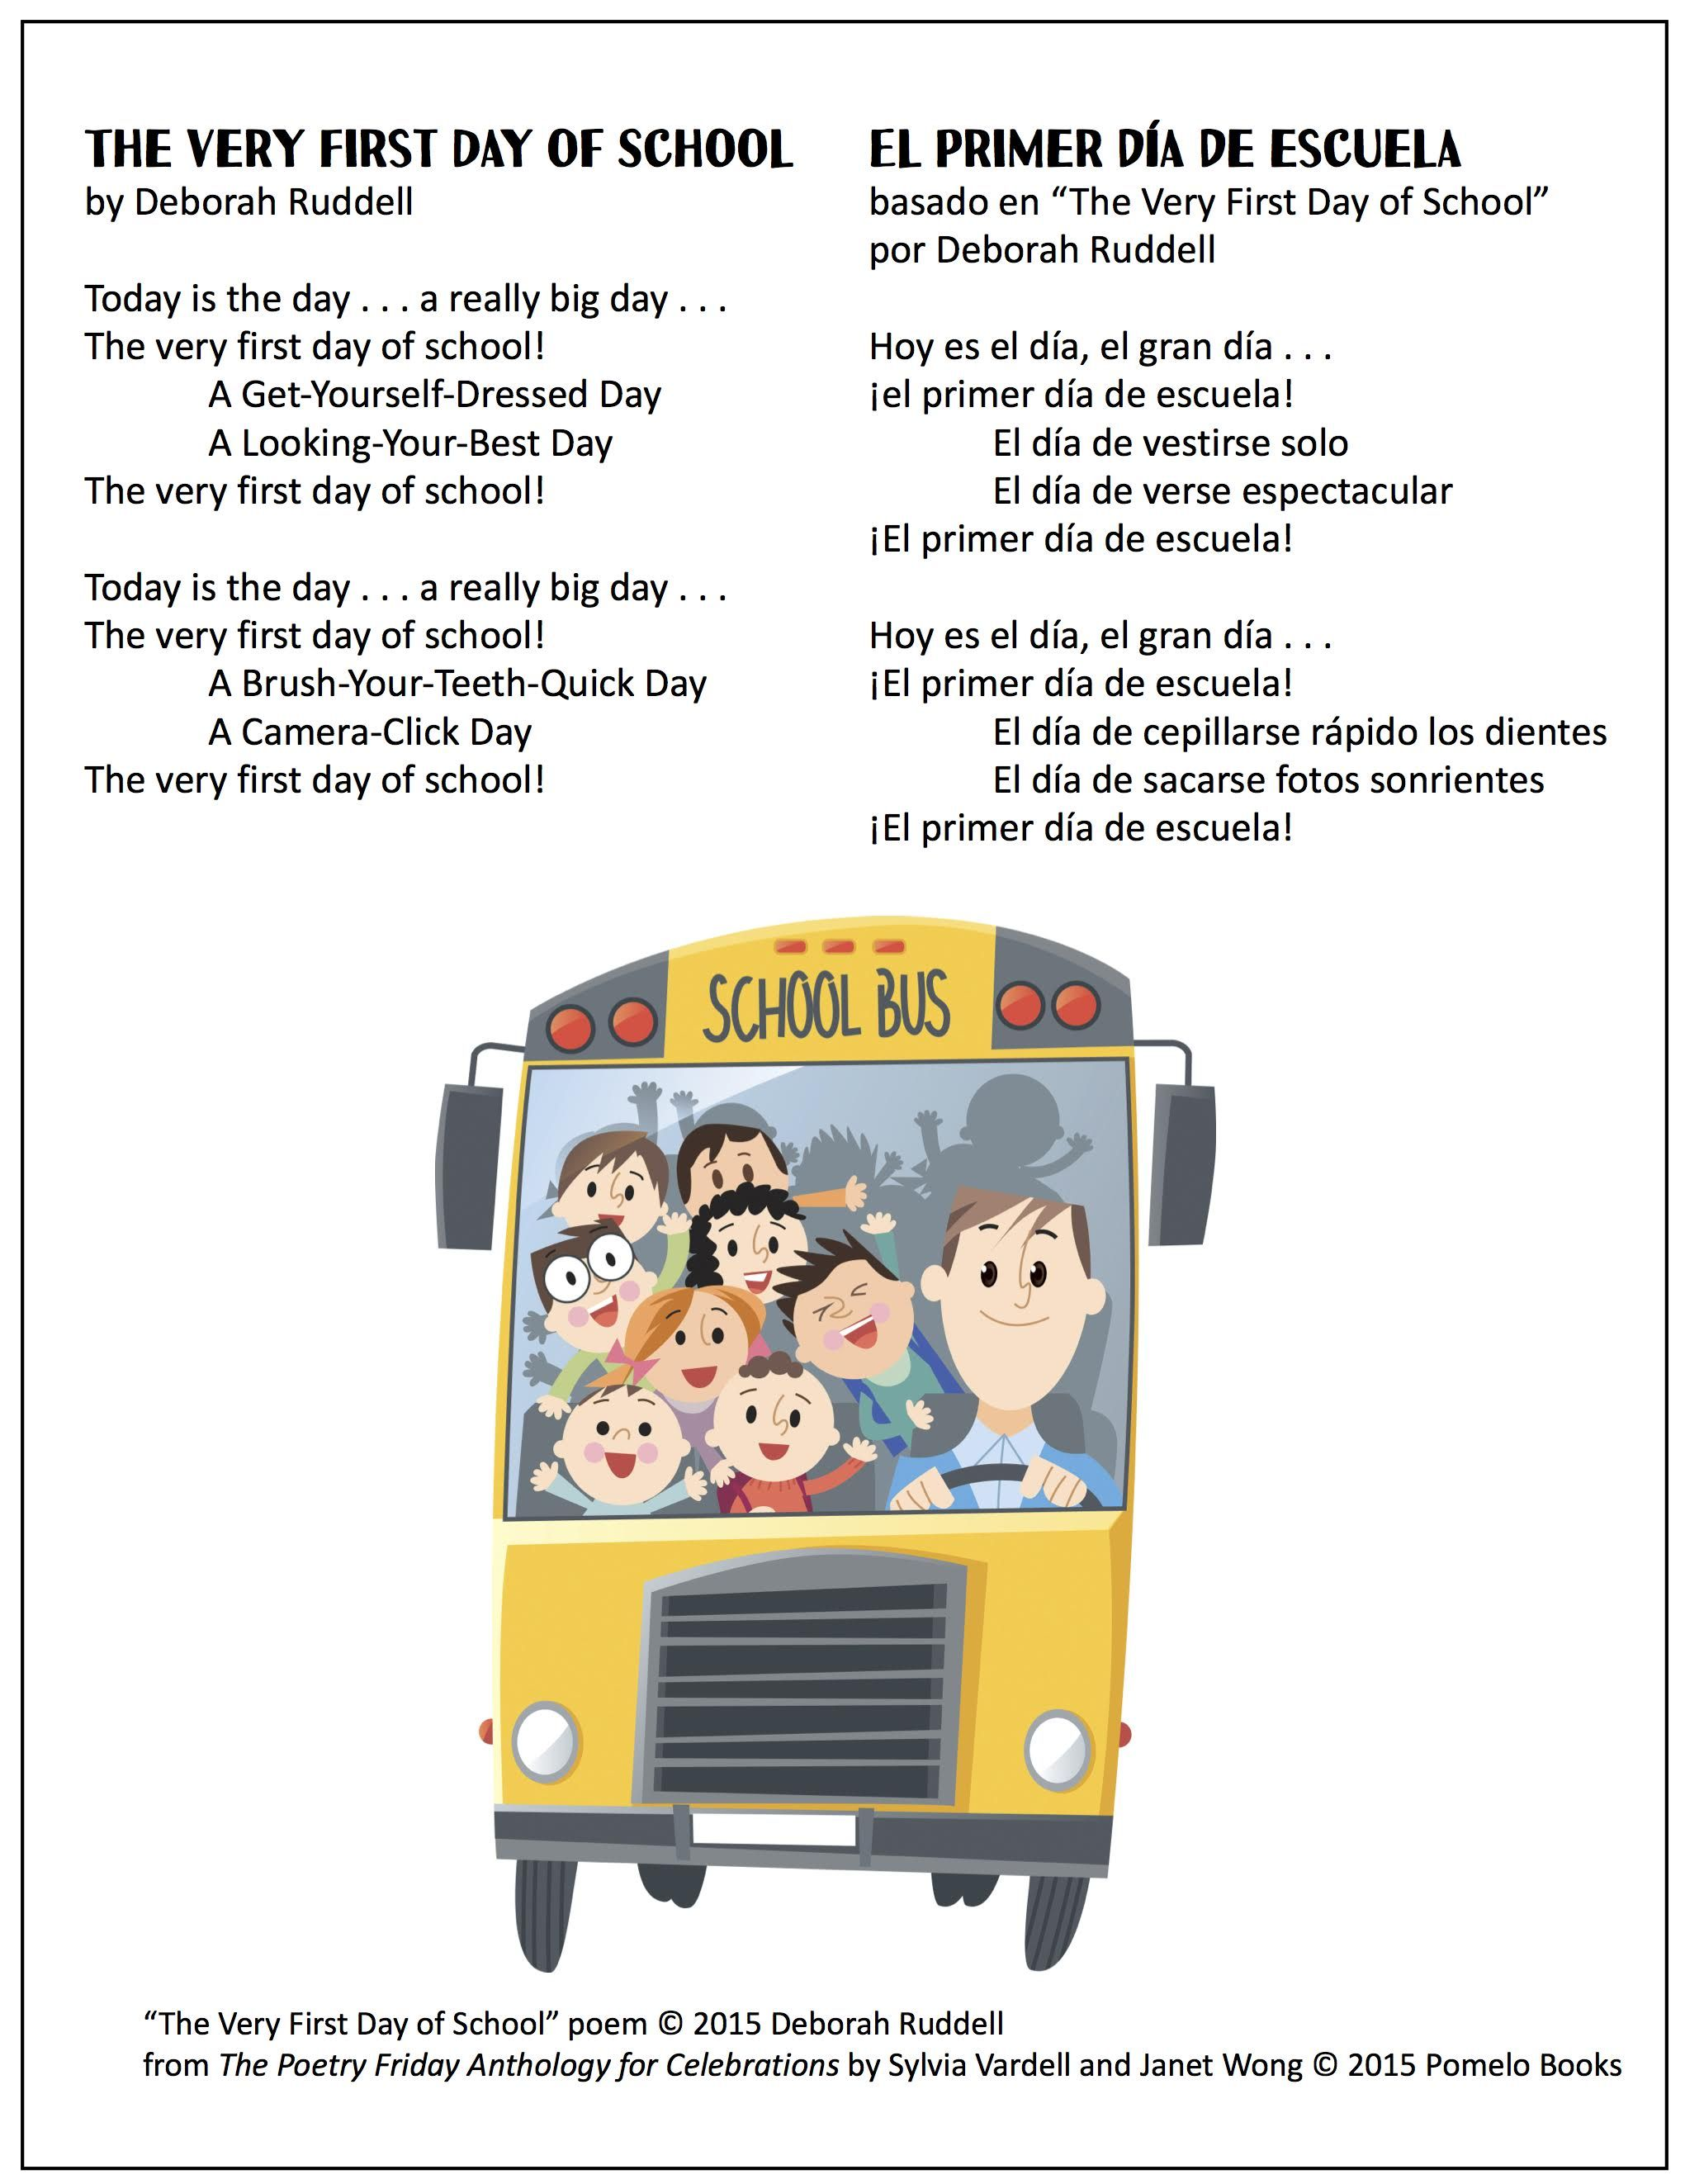 Getting ready for a new school year? Share this poem in English or ...